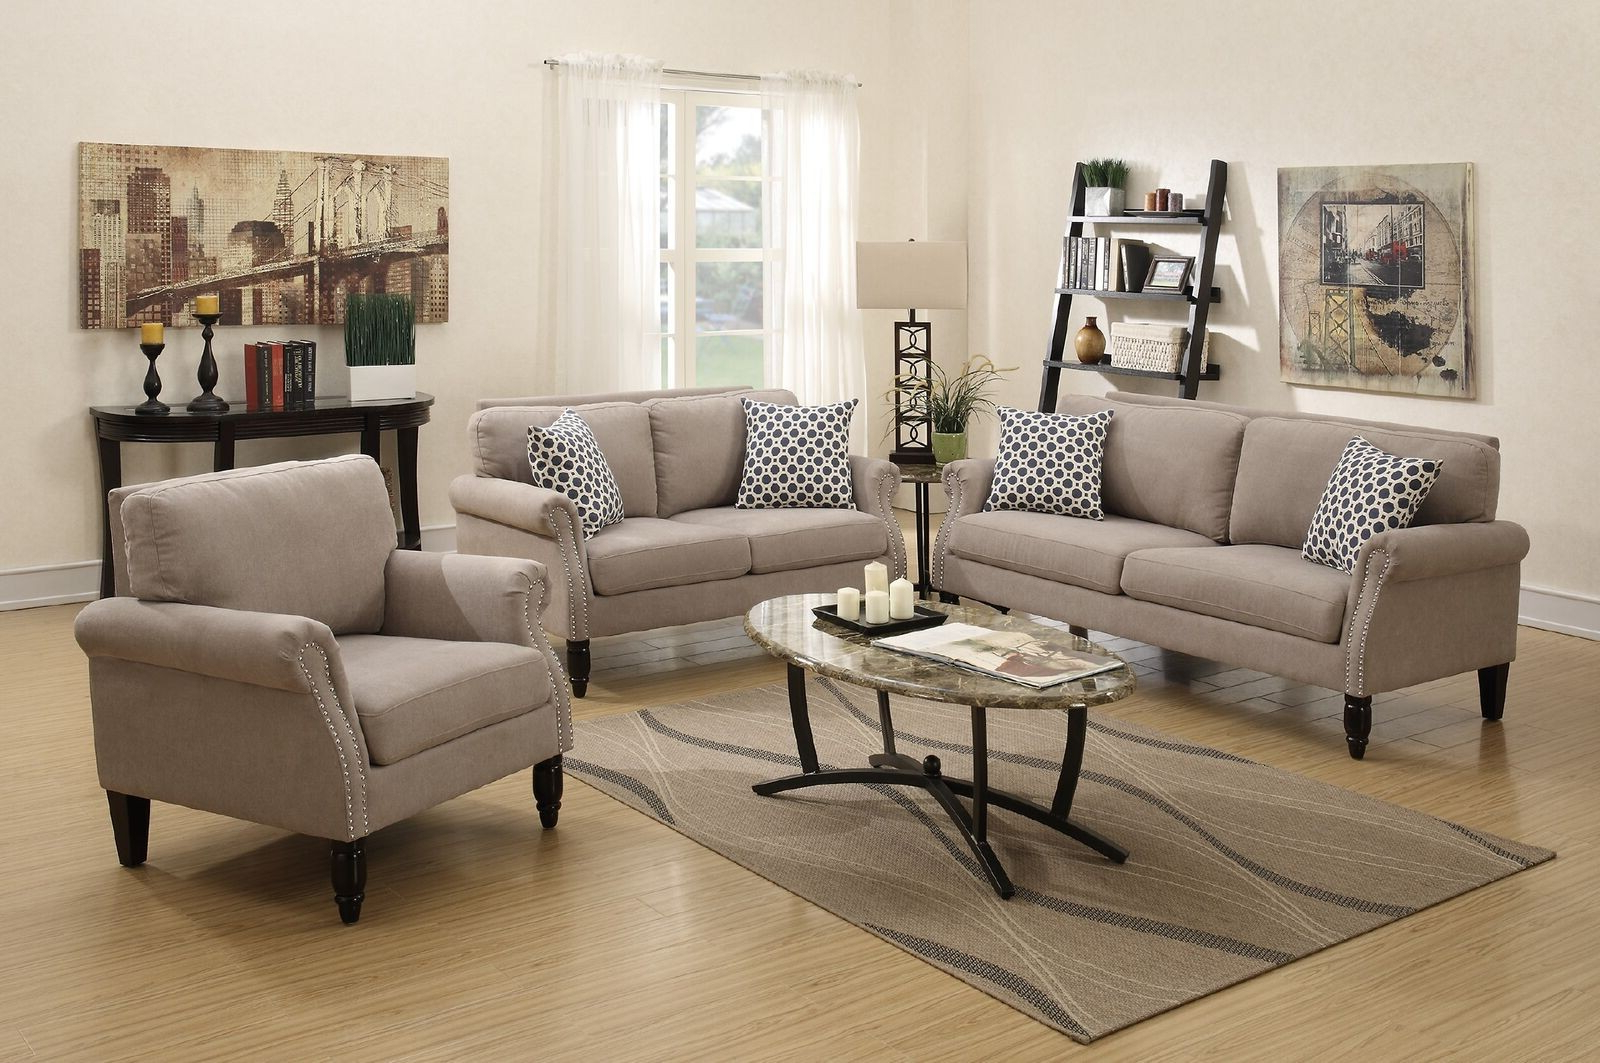 3Pcs Sand Sofa Loveseat Chair Set Lowest Price – Sofa, Sectional Pertaining To Best And Newest Sofa Loveseat And Chair Set (View 2 of 20)